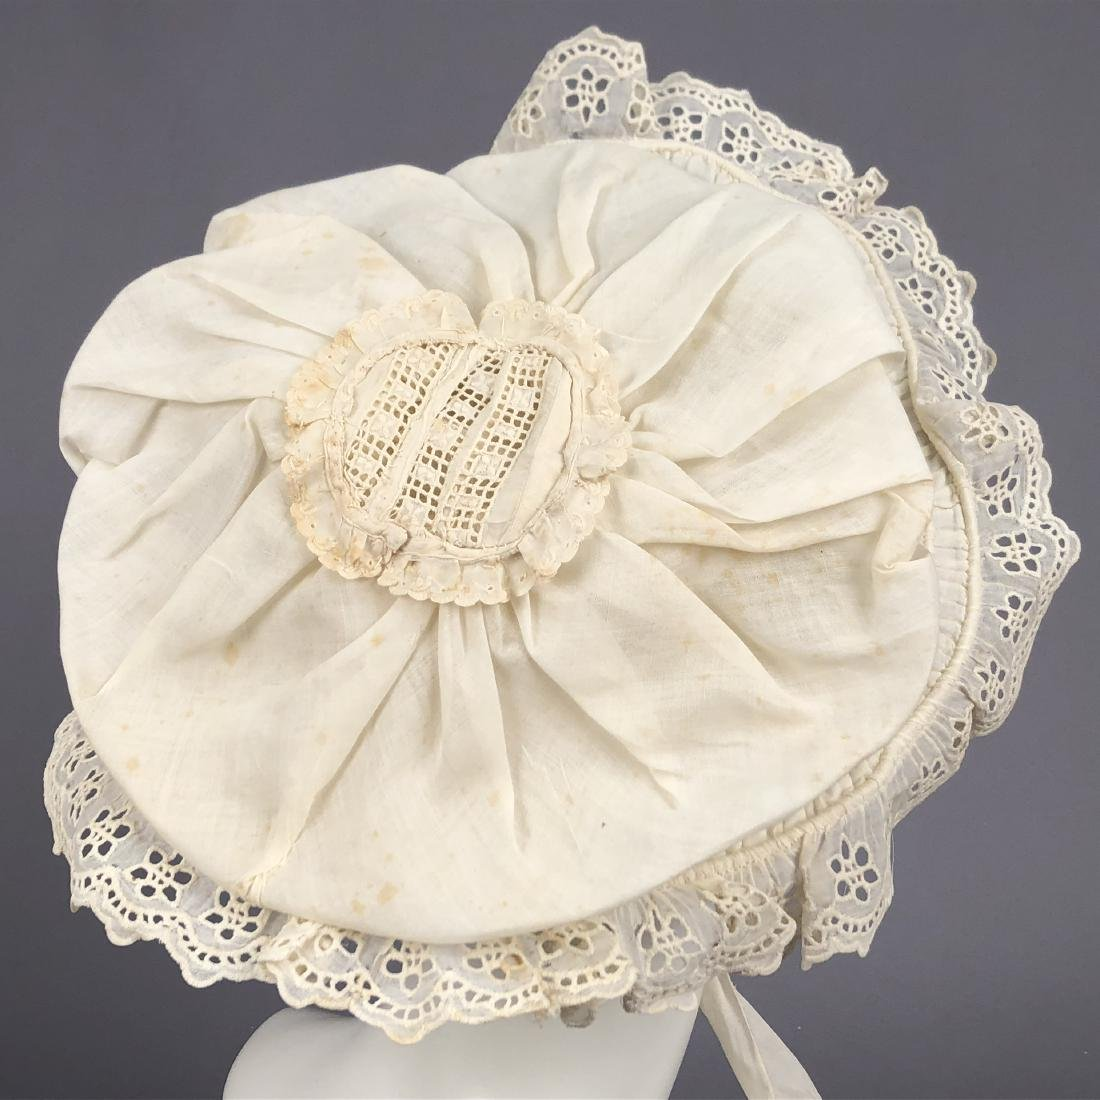 TAN STRAW LADY'S BONNET and GIRL'S HAT, 1850 - 1855 - 6